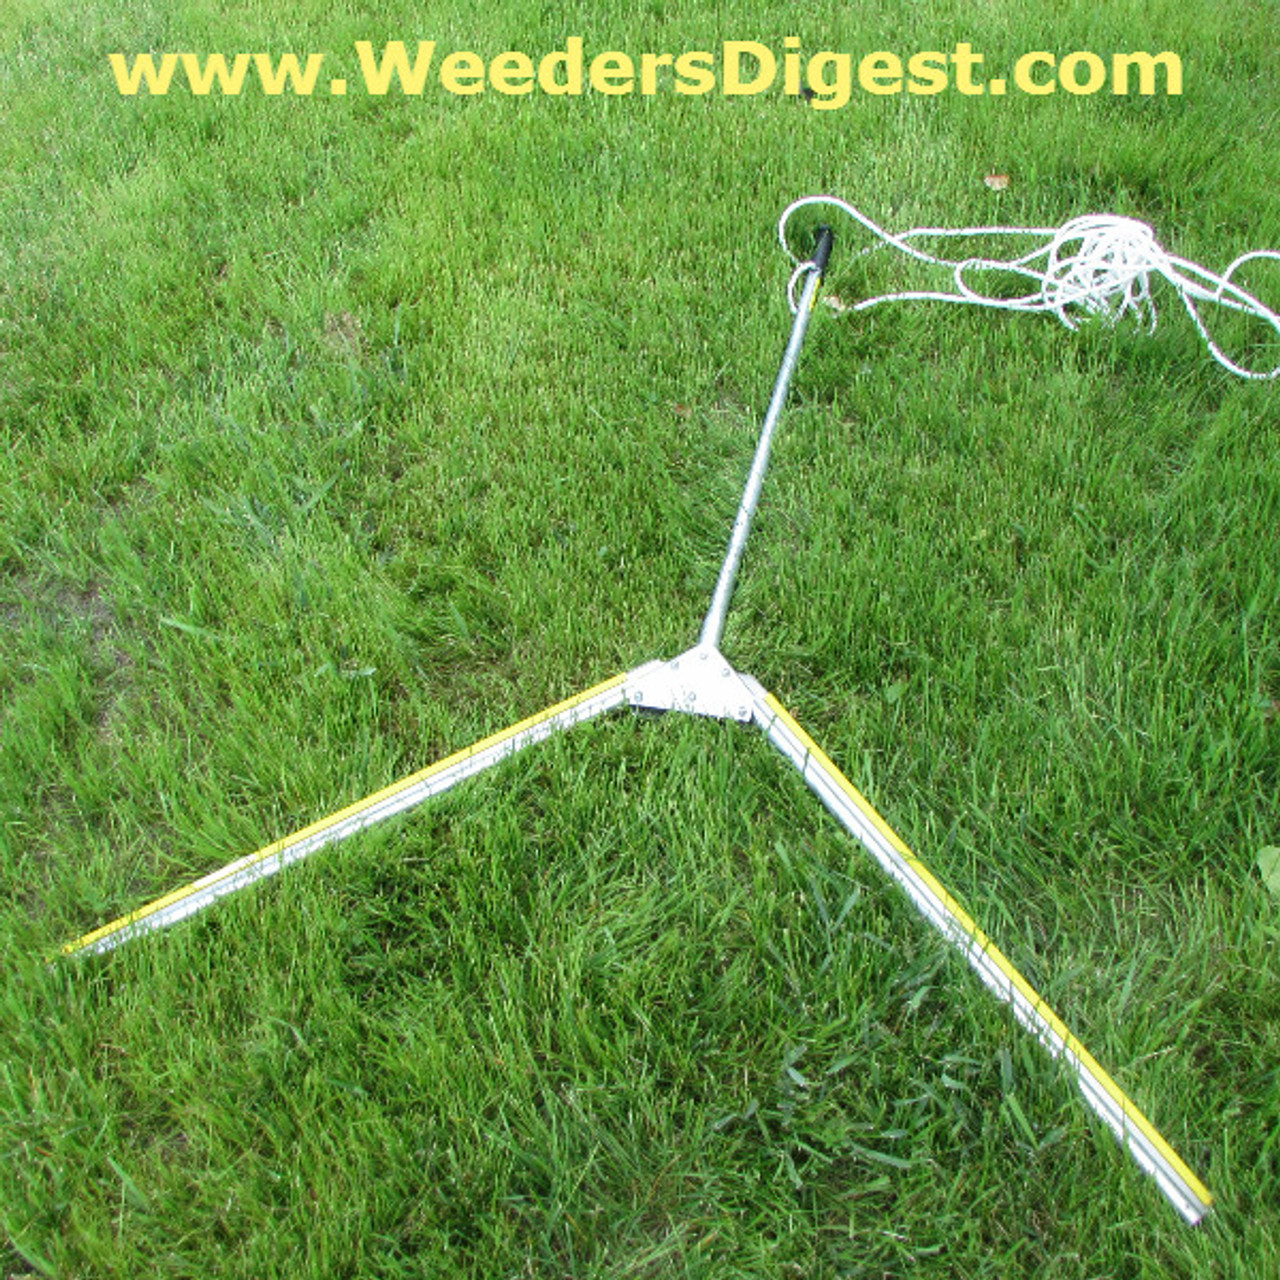 Weed Shear Razor Sharp Aquatic Seaweed tool for cutting lake & Pond Weeds